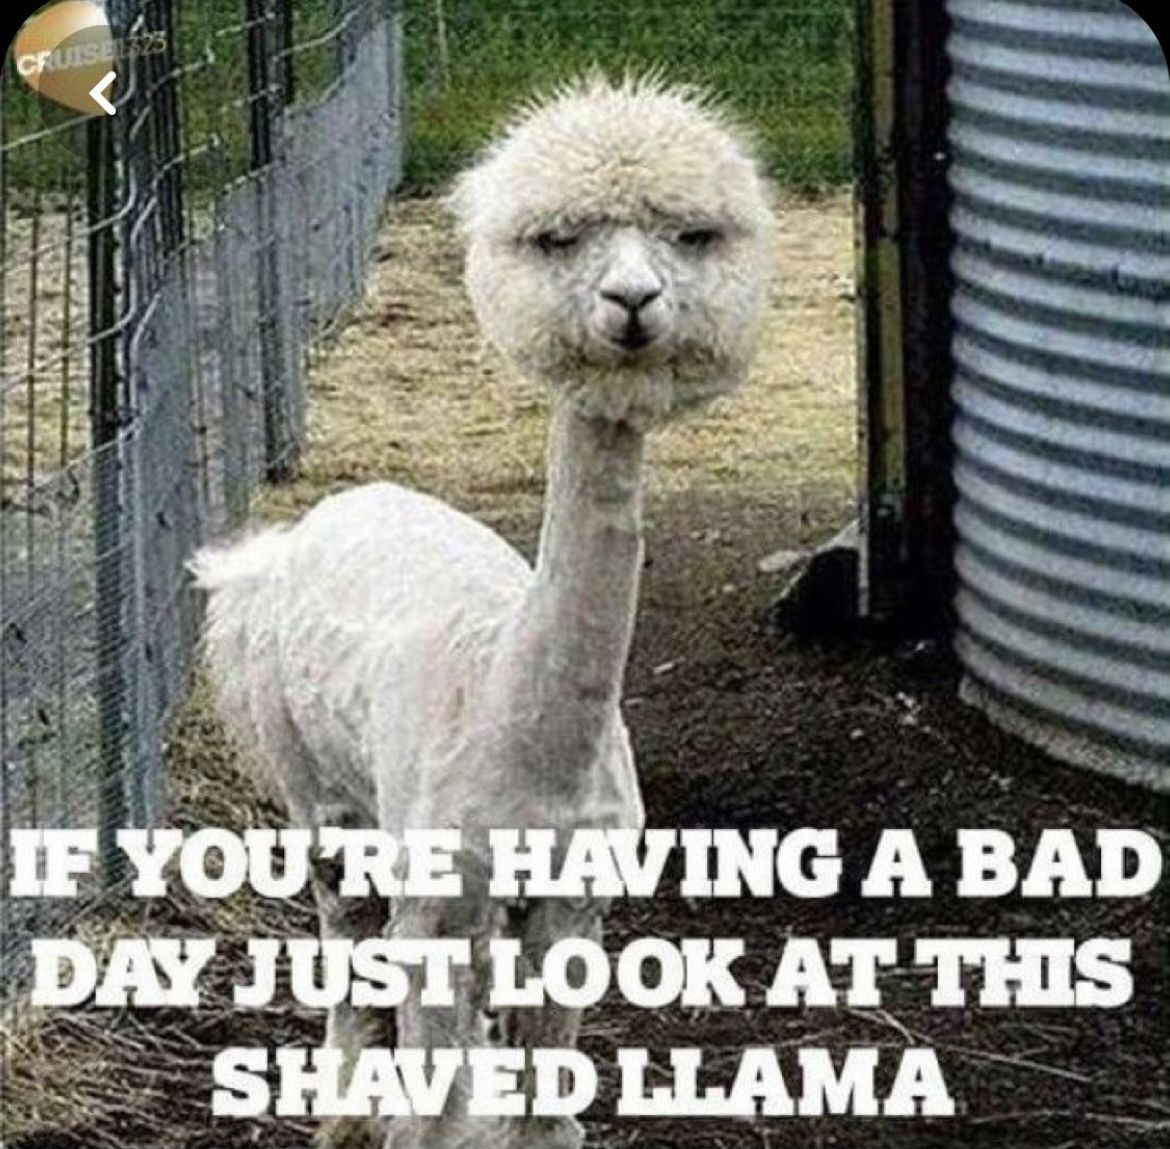 If you're having a bad day just look at this shaved llama